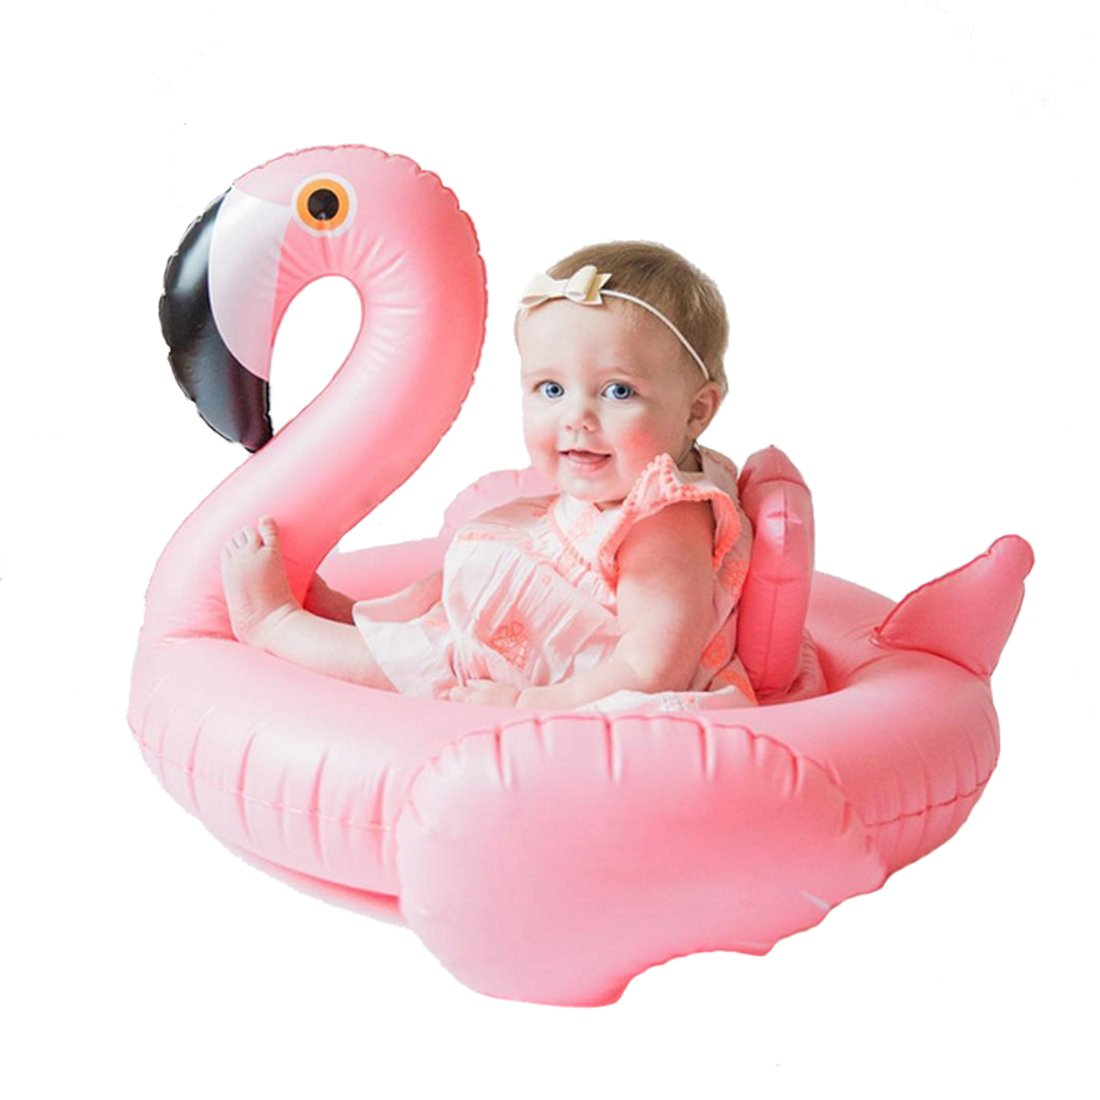 d77b2b888 outlet Inflatable Float Swimming Aids Pool Flamingo Swim Ring Pink Bird  Floaties Seat Boat Raft Summer